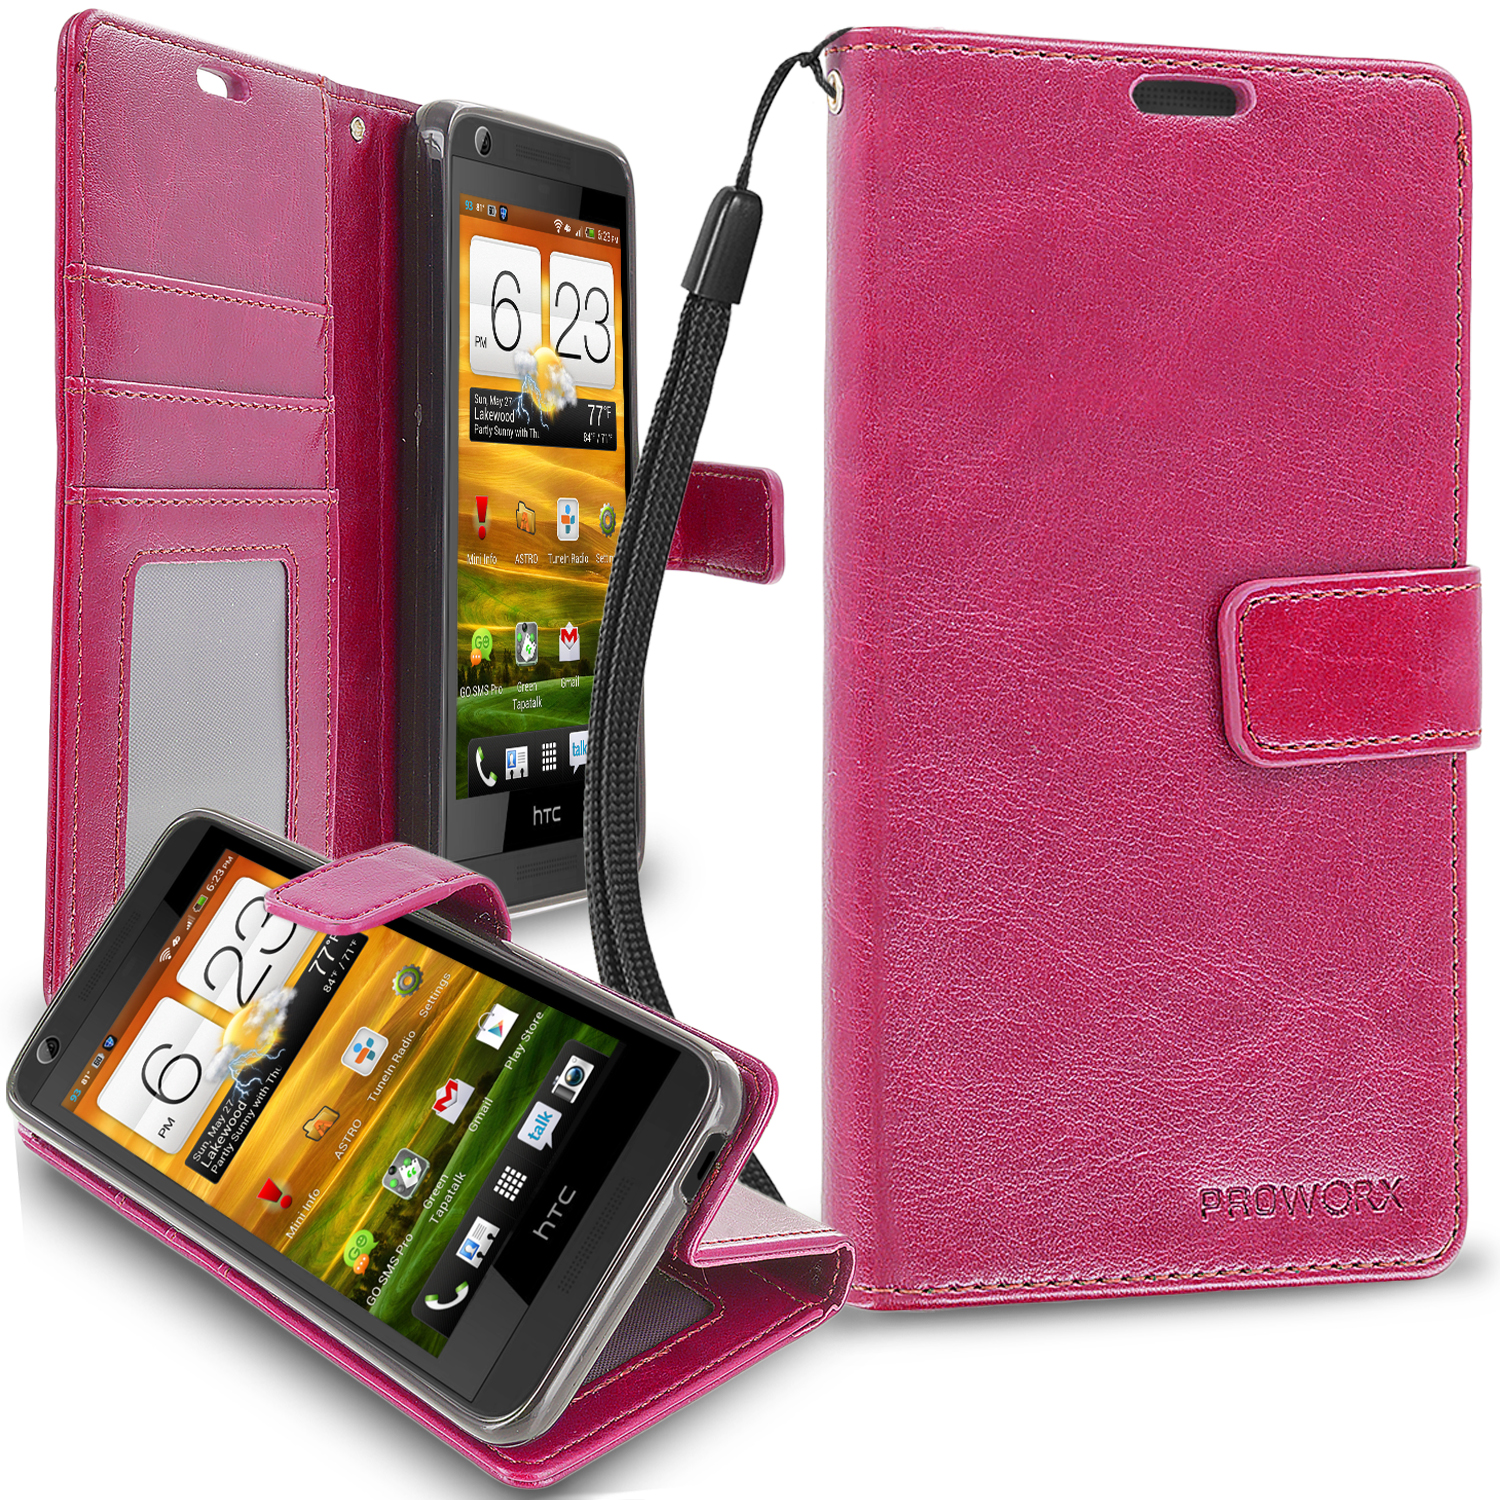 HTC Desire 626 / 626s Hot Pink ProWorx Wallet Case Luxury PU Leather Case Cover With Card Slots & Stand